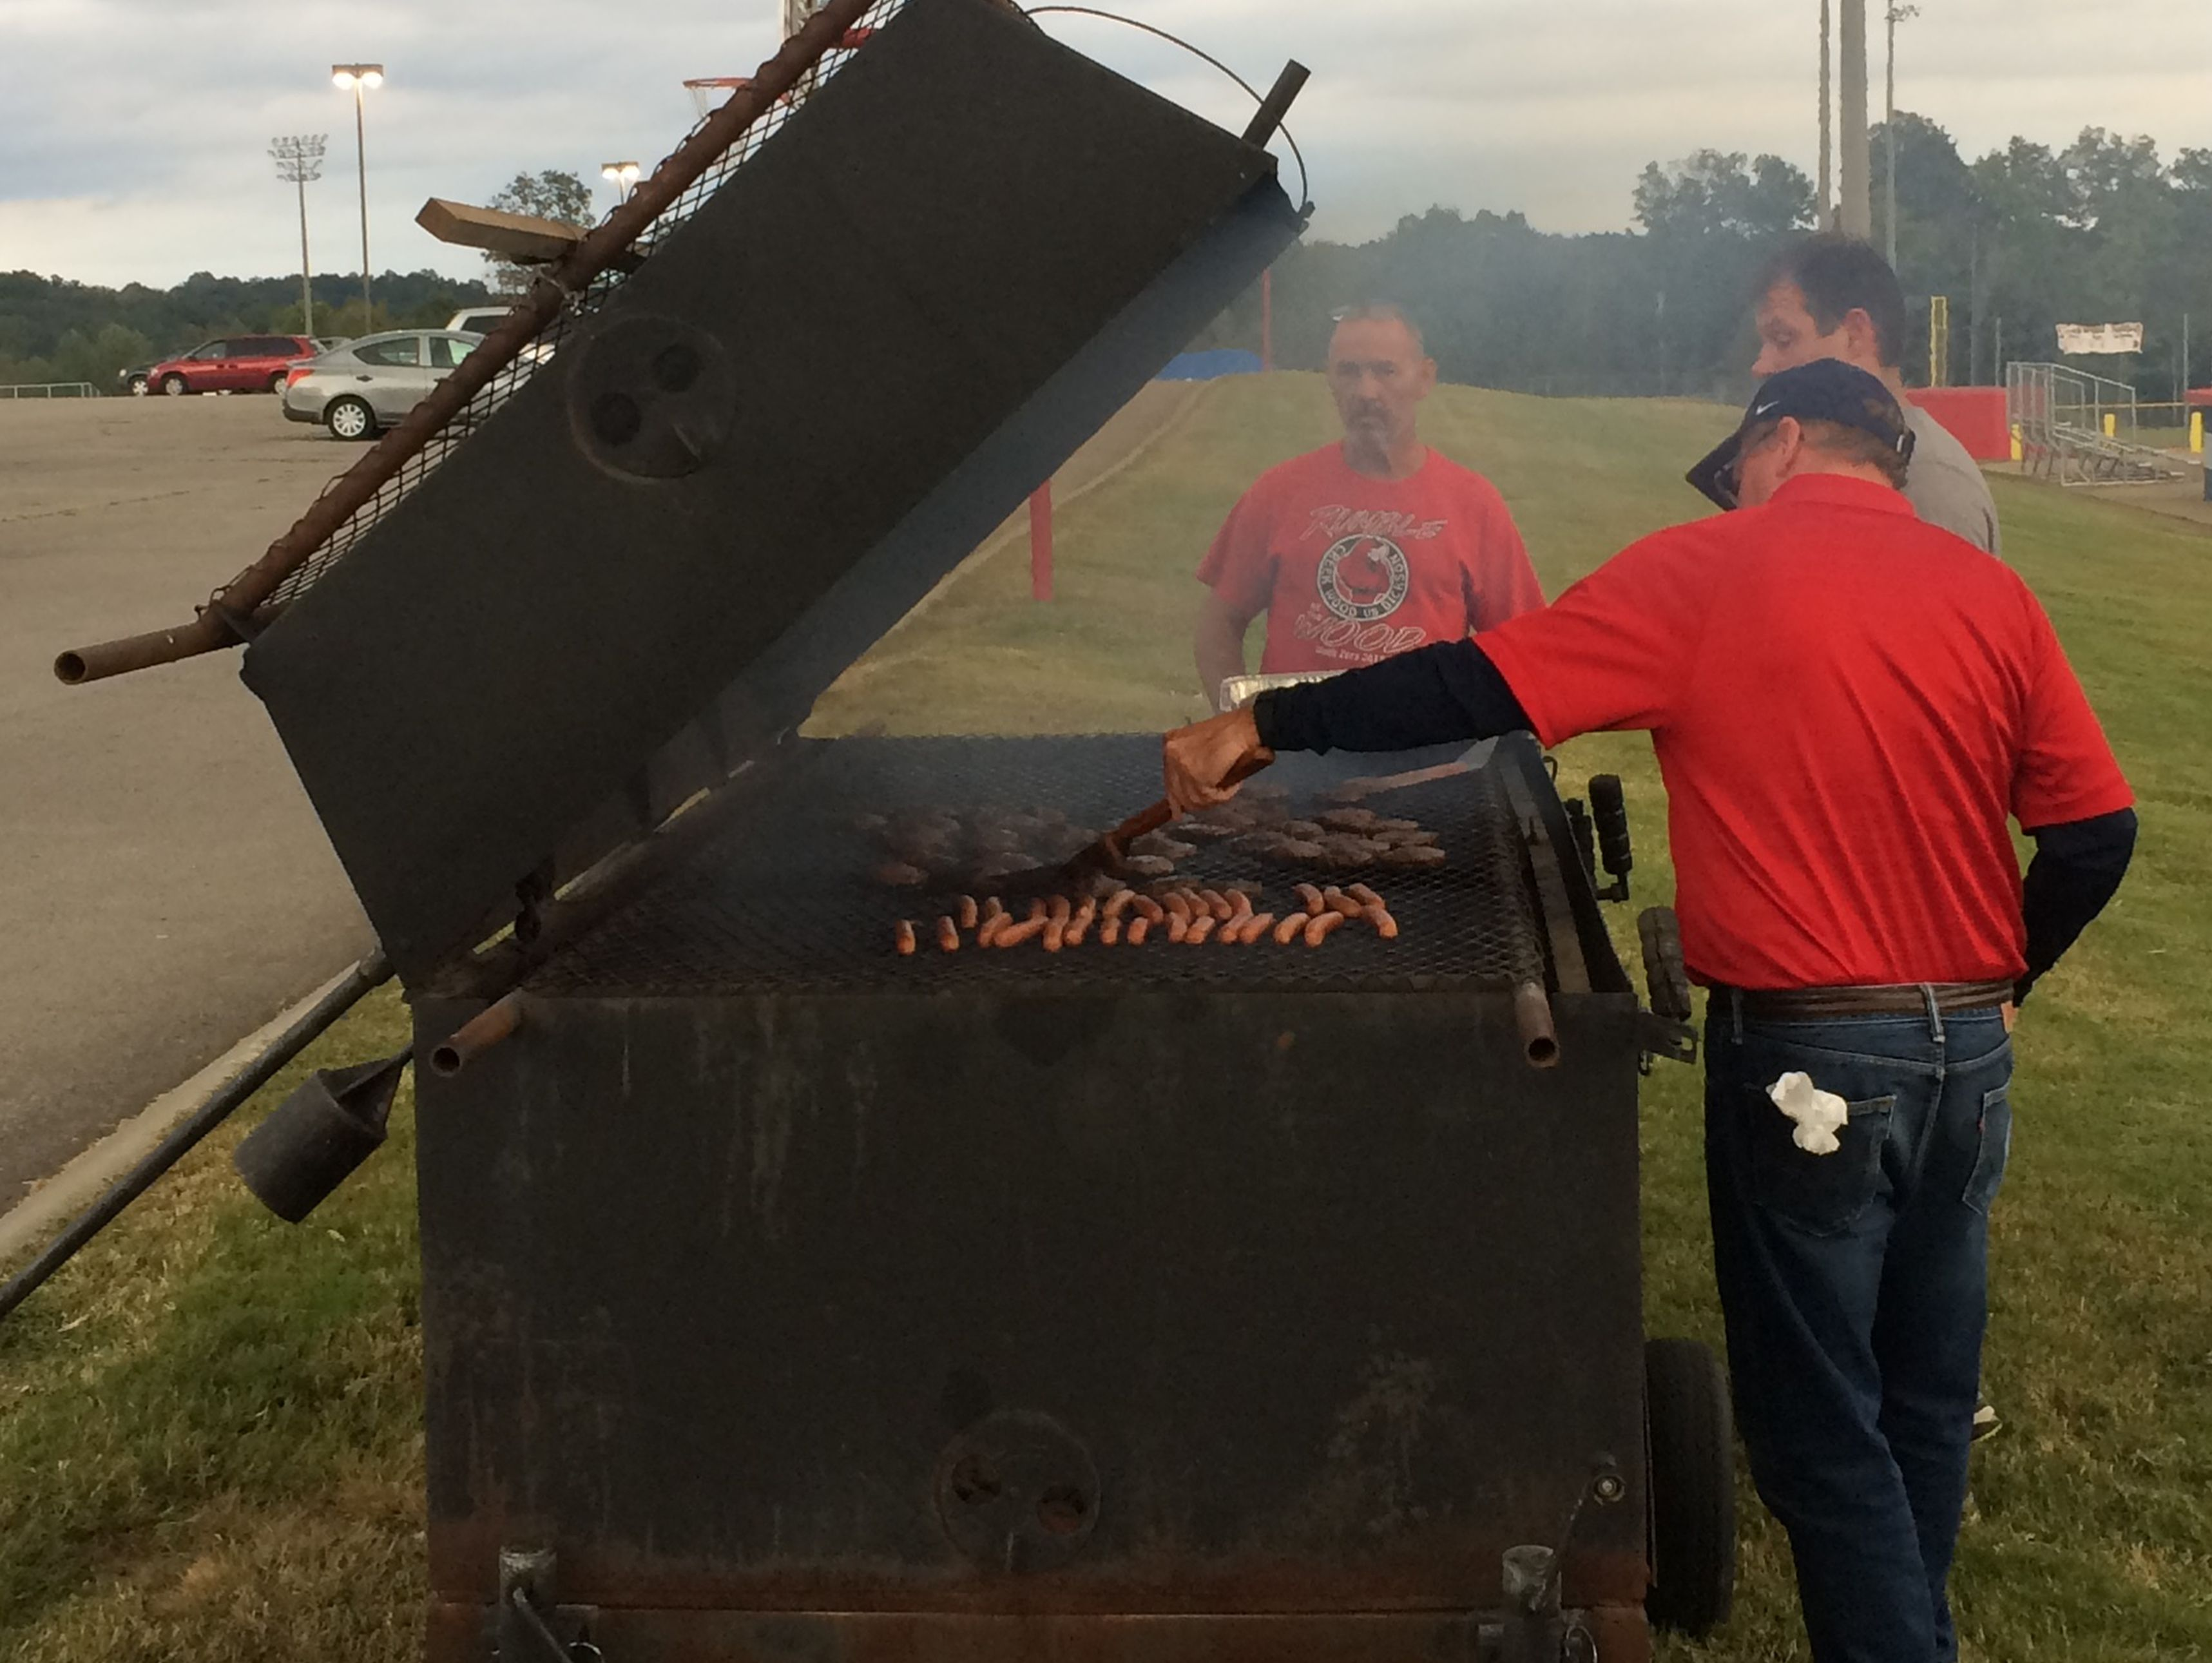 Hamburgers are grilled before the fans arrive at the Creek Wood vs. Hillwood game on Friday, Sept. 30 2016.